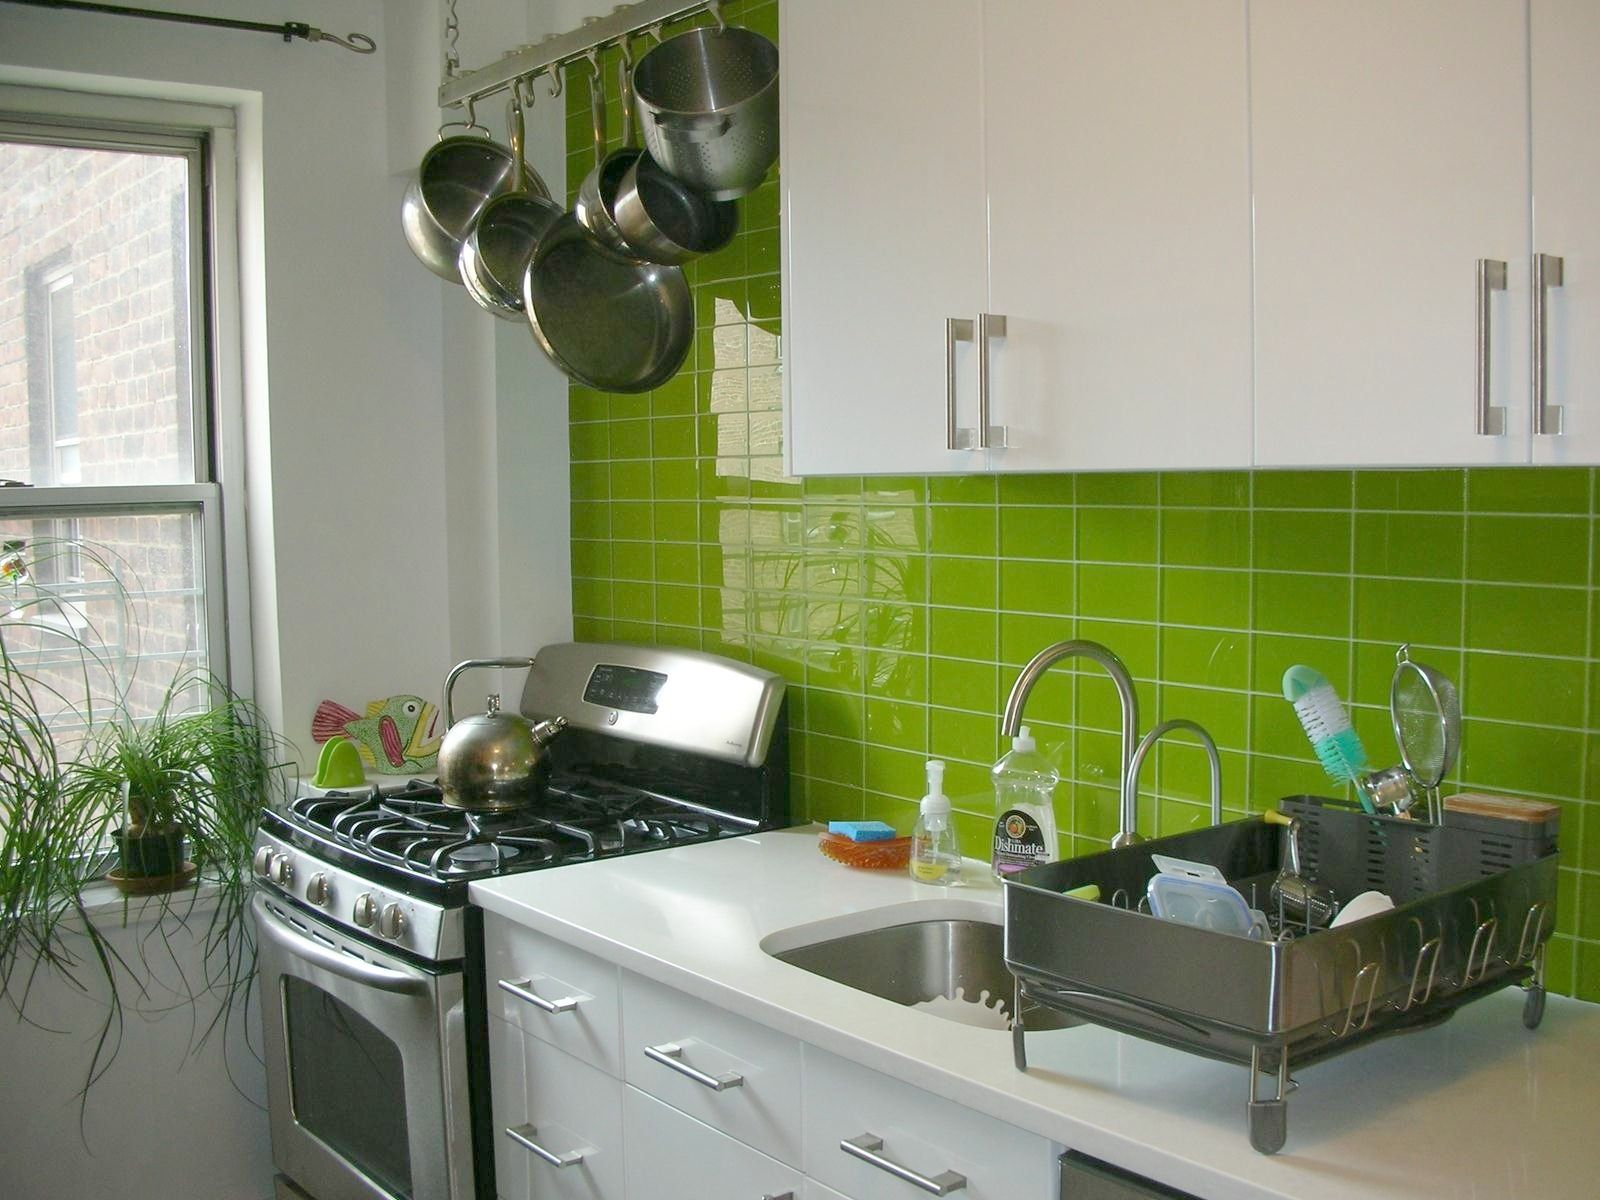 Viva verde our lemongrass tile perks up this nyc kitchen subway modwalls lush 3x6 lemongrass green glass subway tile kitchen in nyc dailygadgetfo Image collections